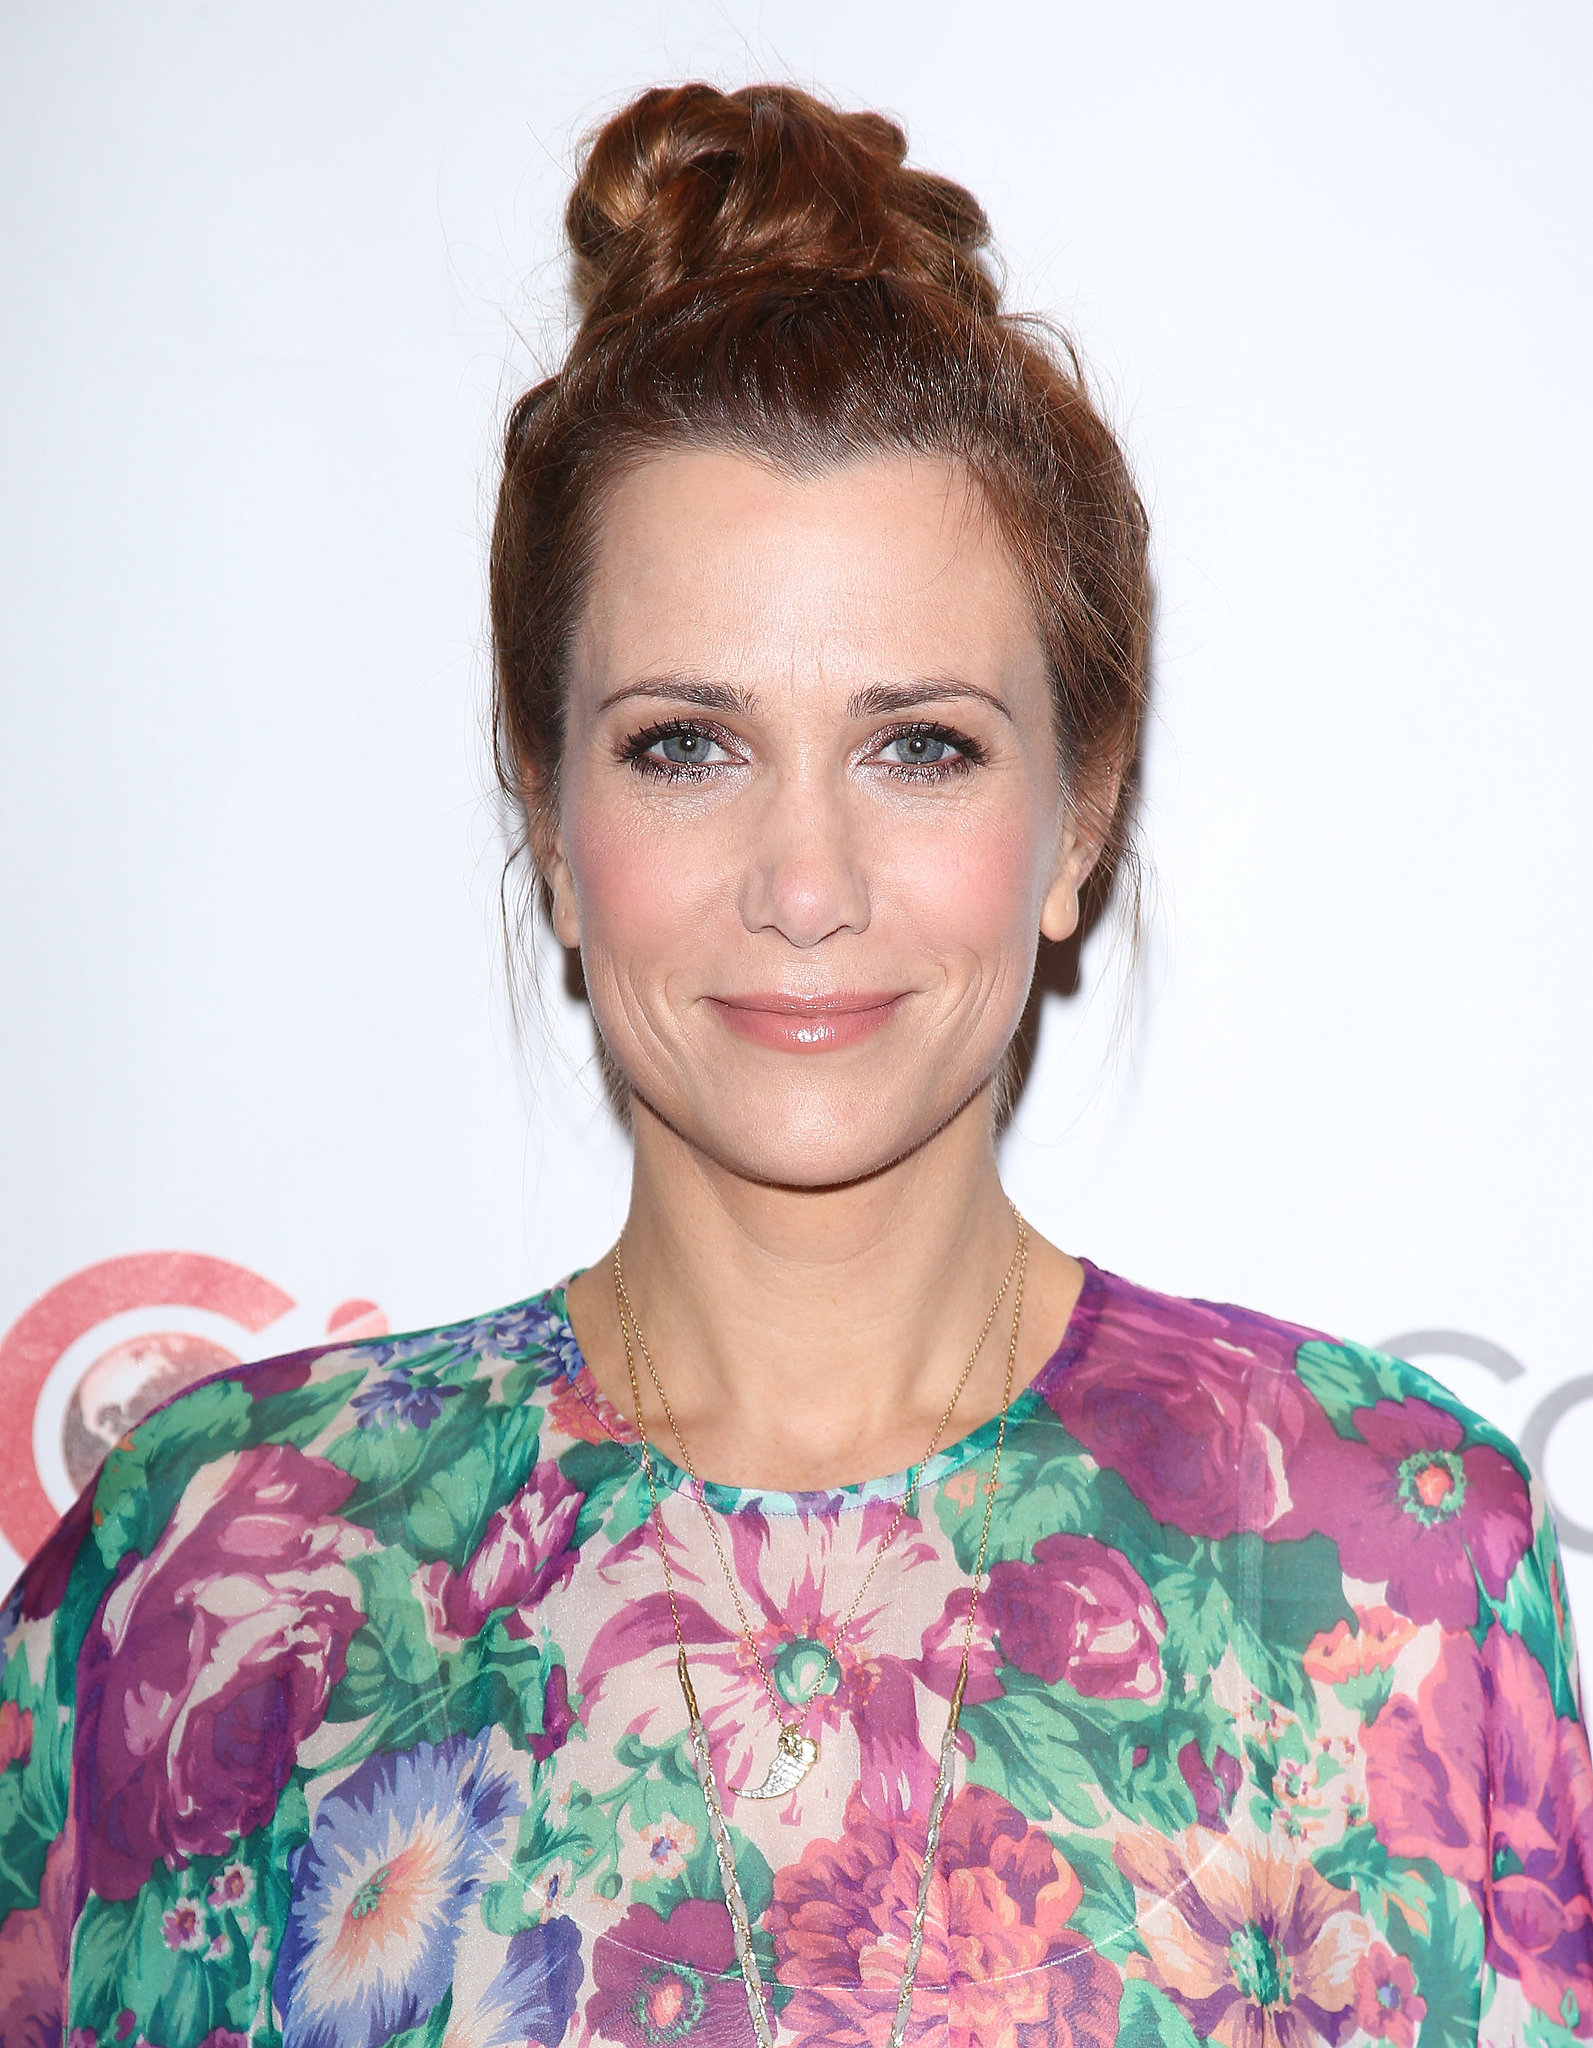 Kristen Wiig swept her hair up into a precarious topknot that will keep your hair color safe from chlorine when you take a dip this Summer.